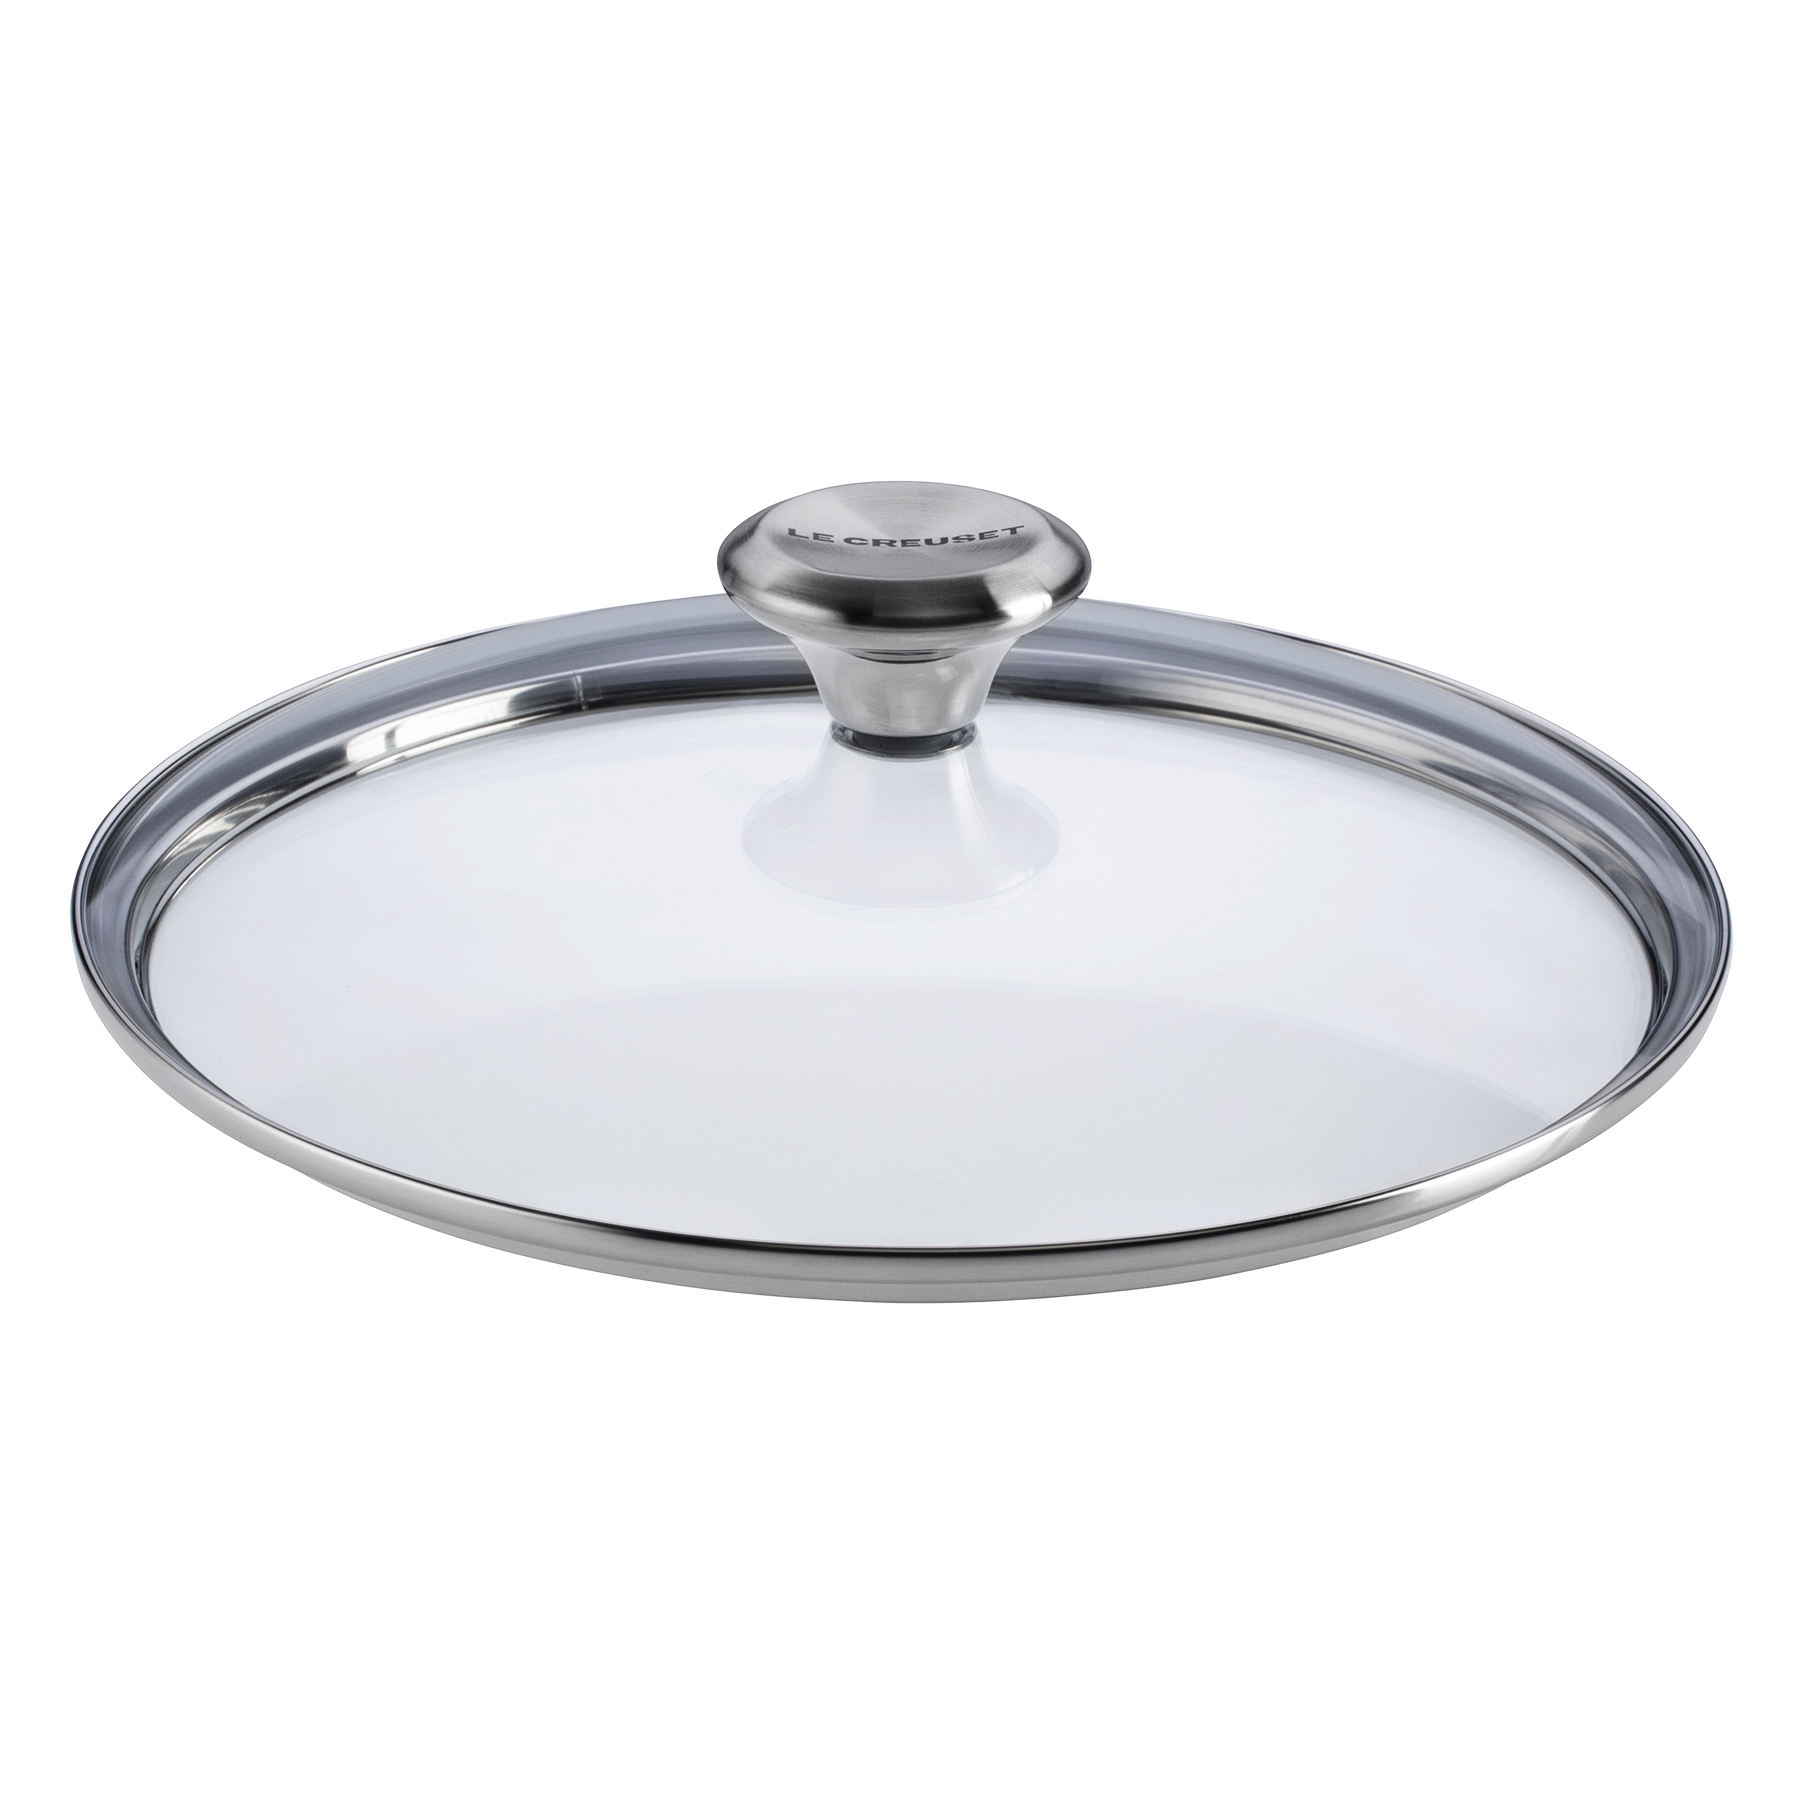 Le Creuset Signature 9.5 Inch Glass Lid